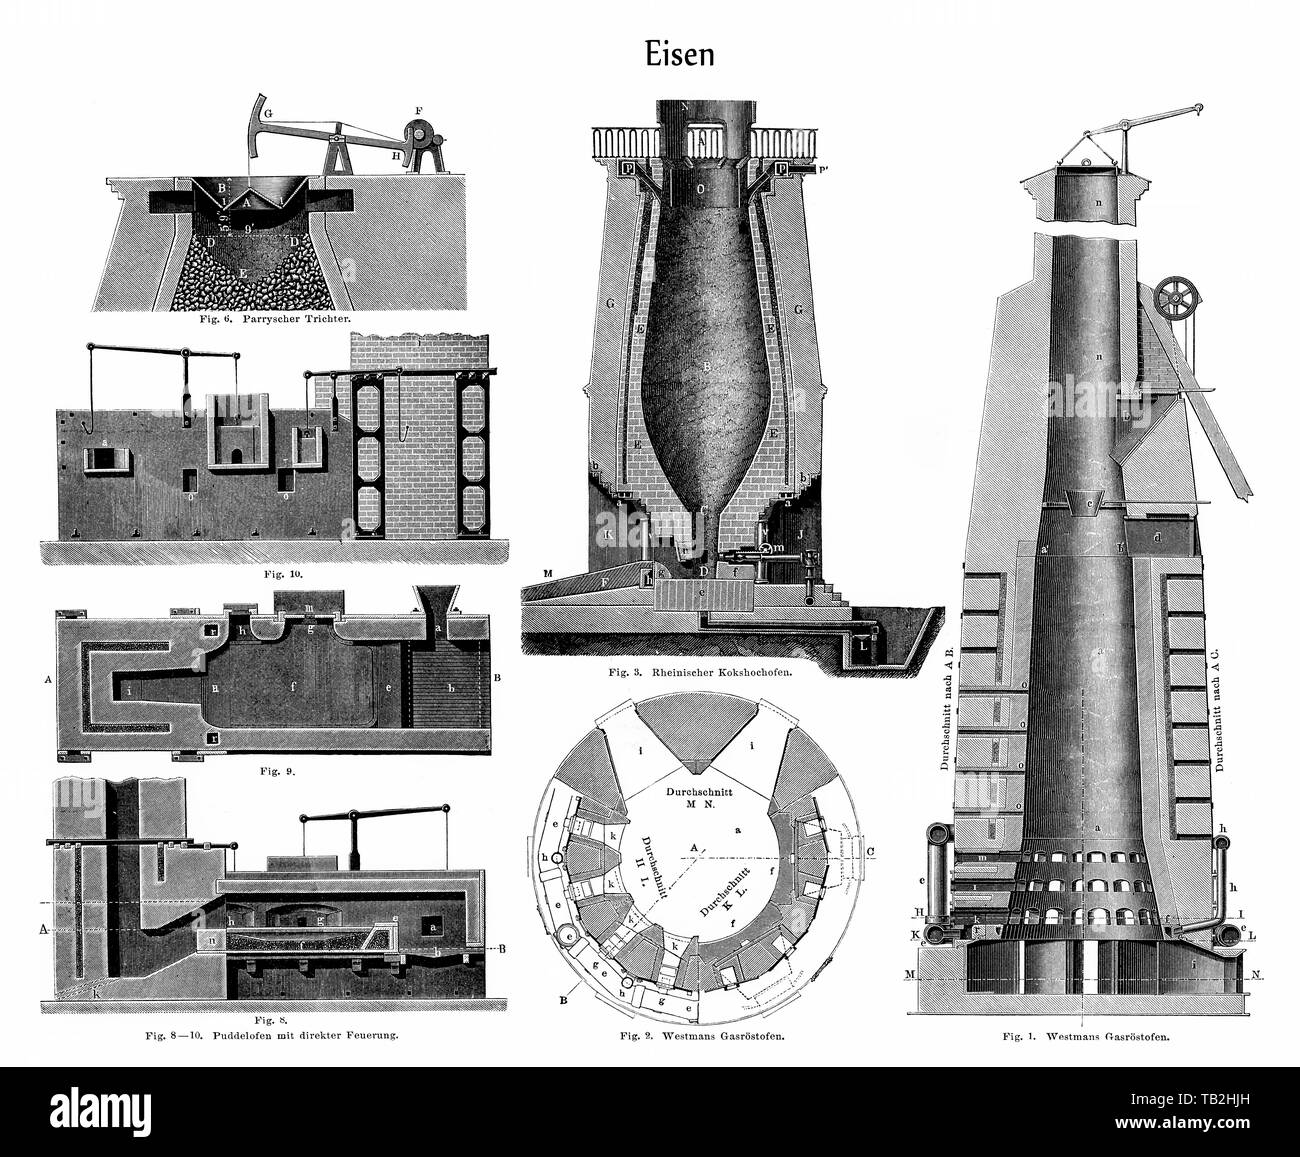 Graphic depiction, technical processing of iron in different blast furnaces, - Stock Image